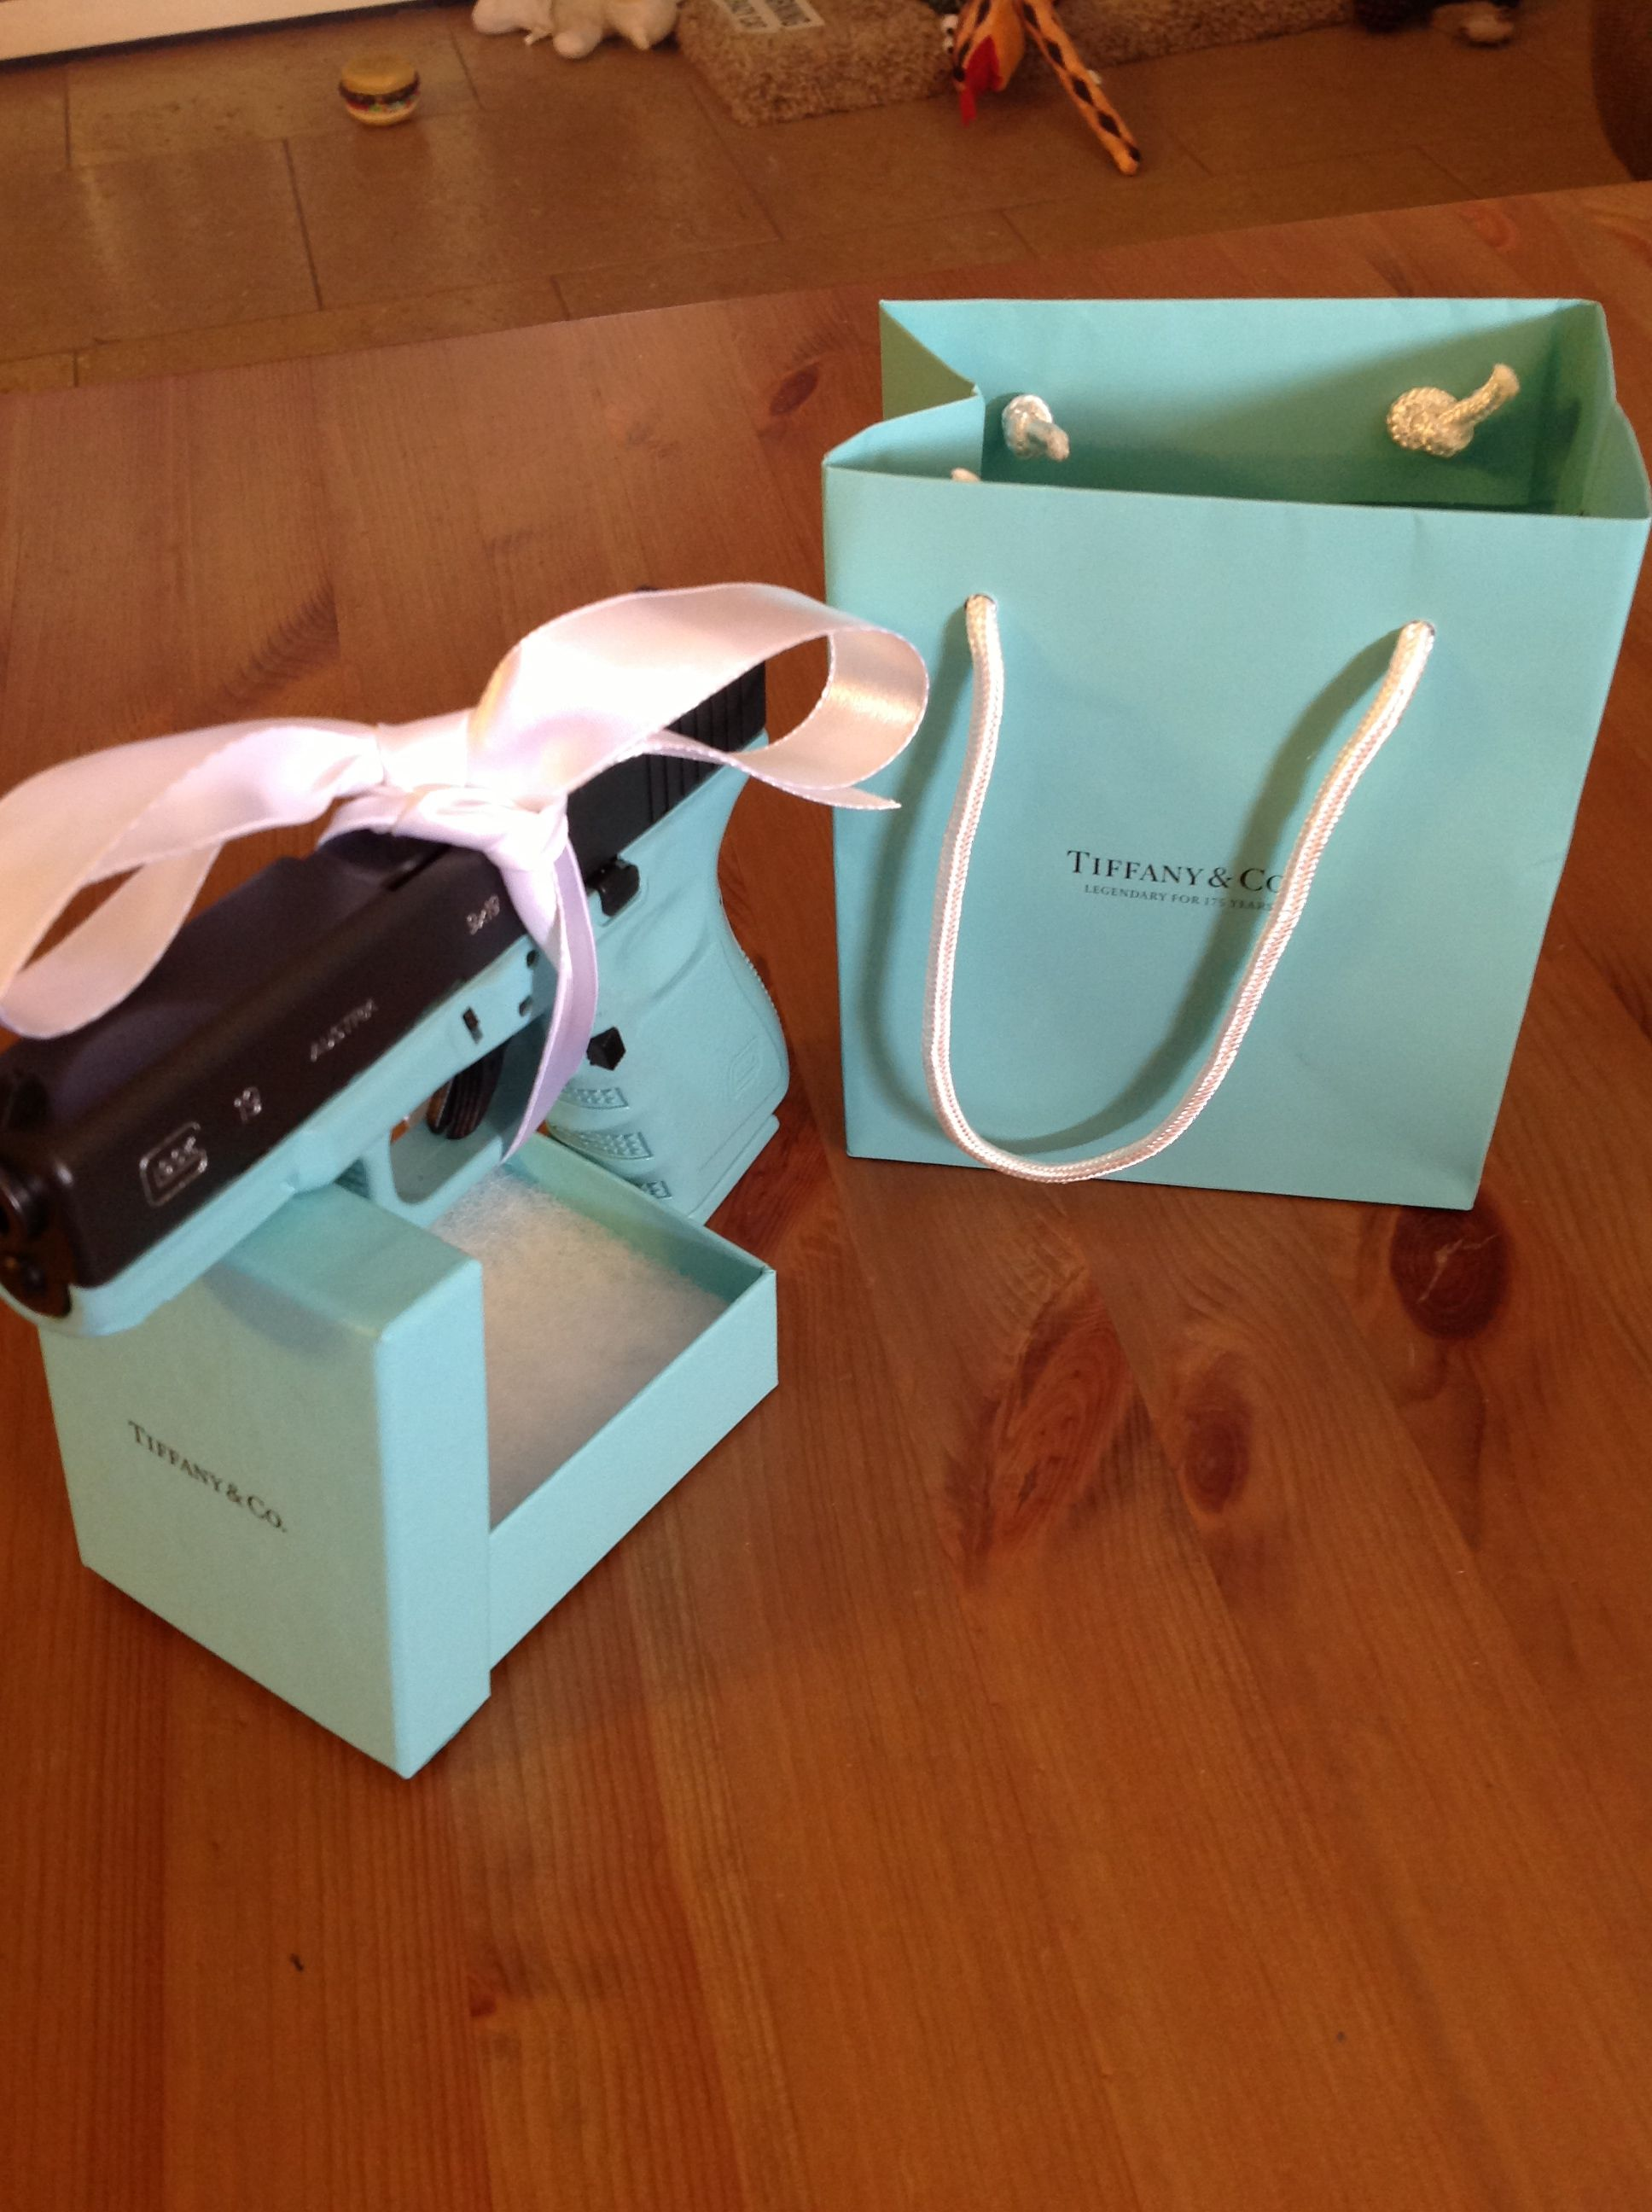 Glock 9mmif my husband gave me a tiffany bag and this is what I